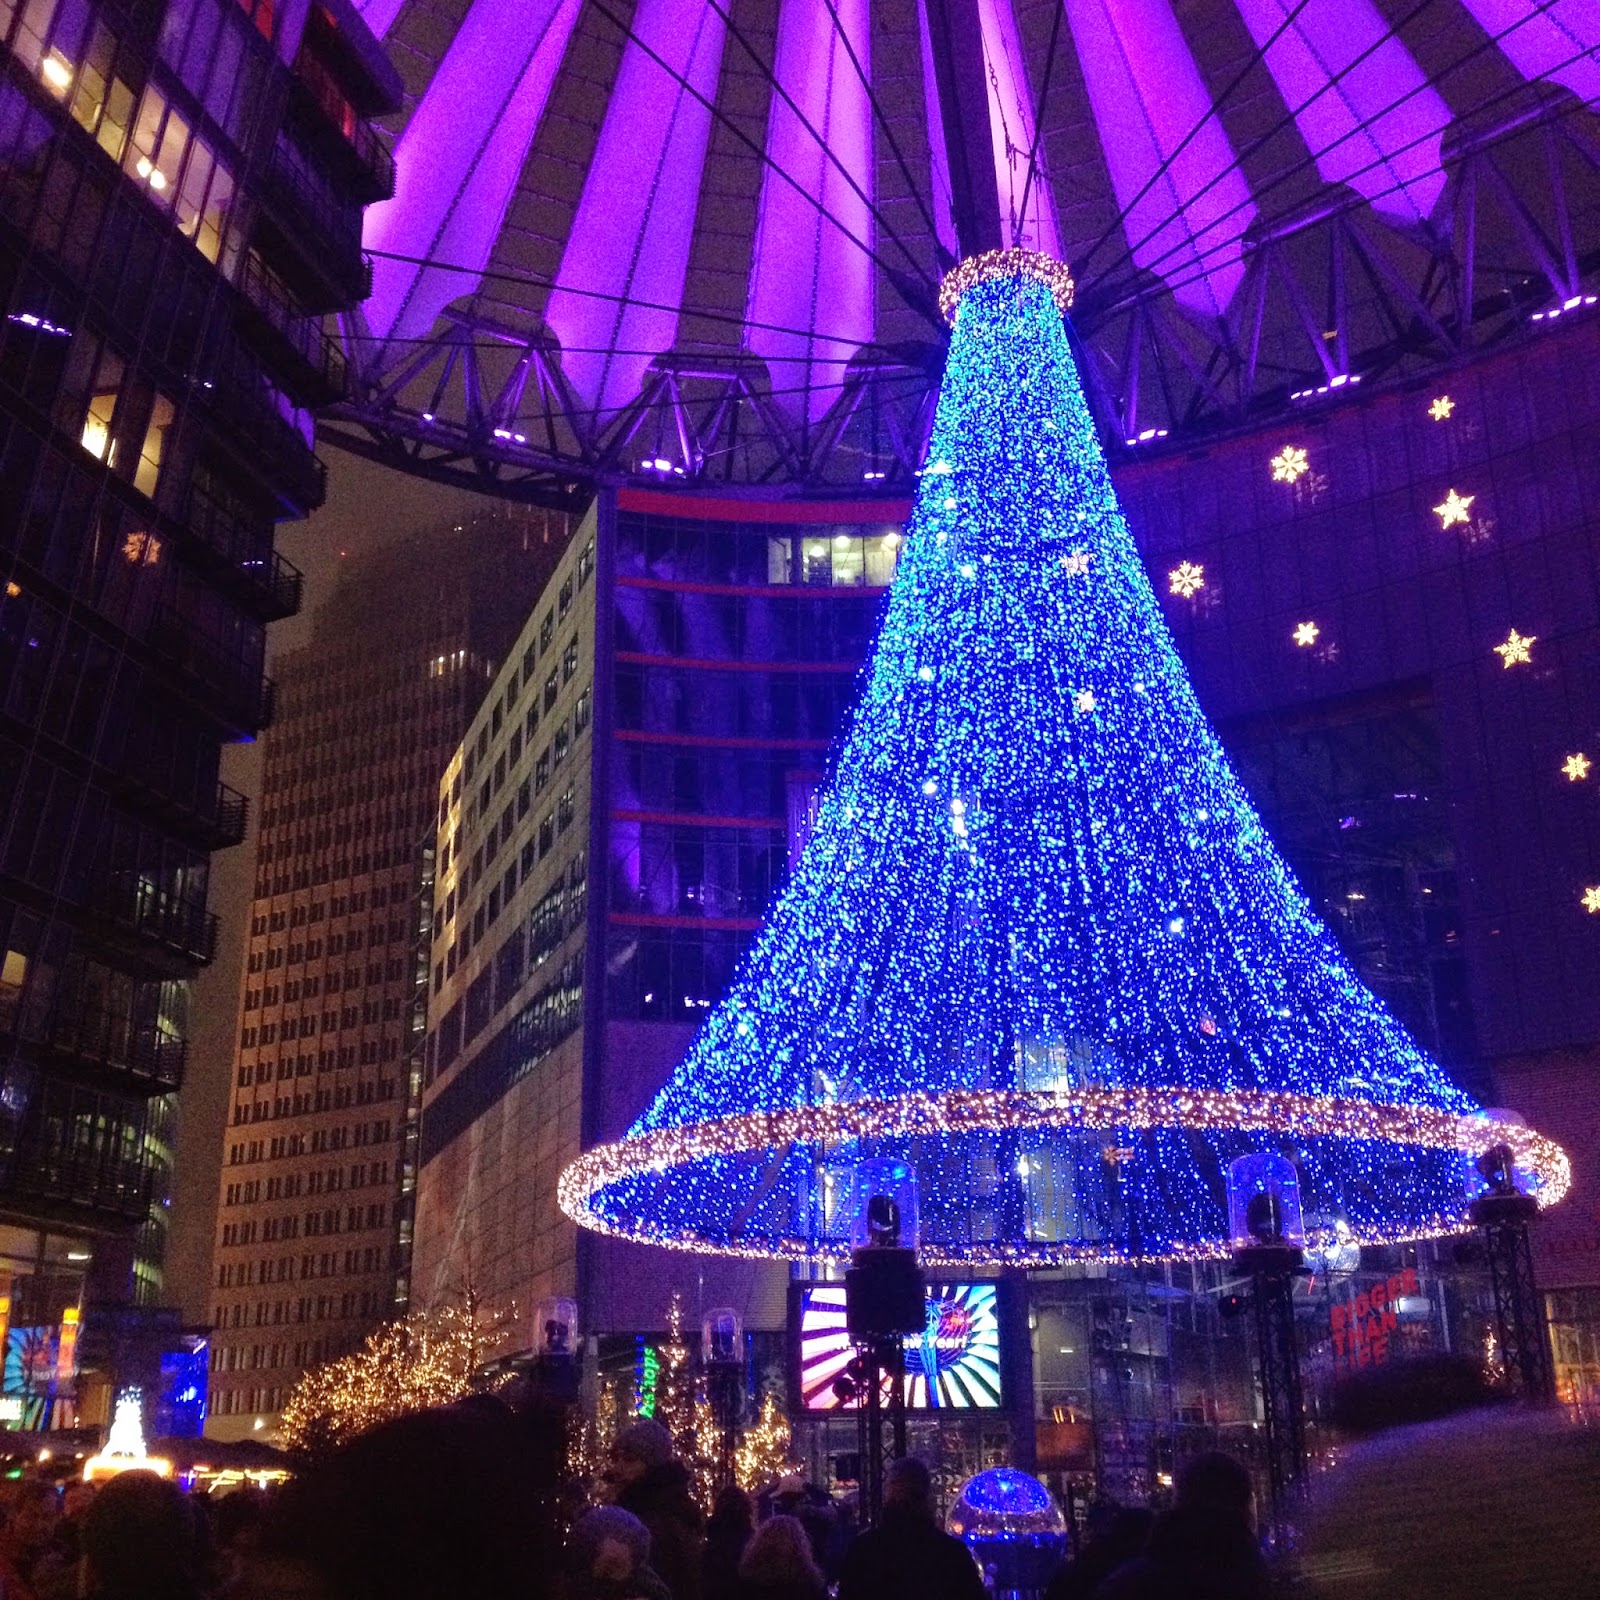 LED Christmas Tree at Sony Center, Berlin